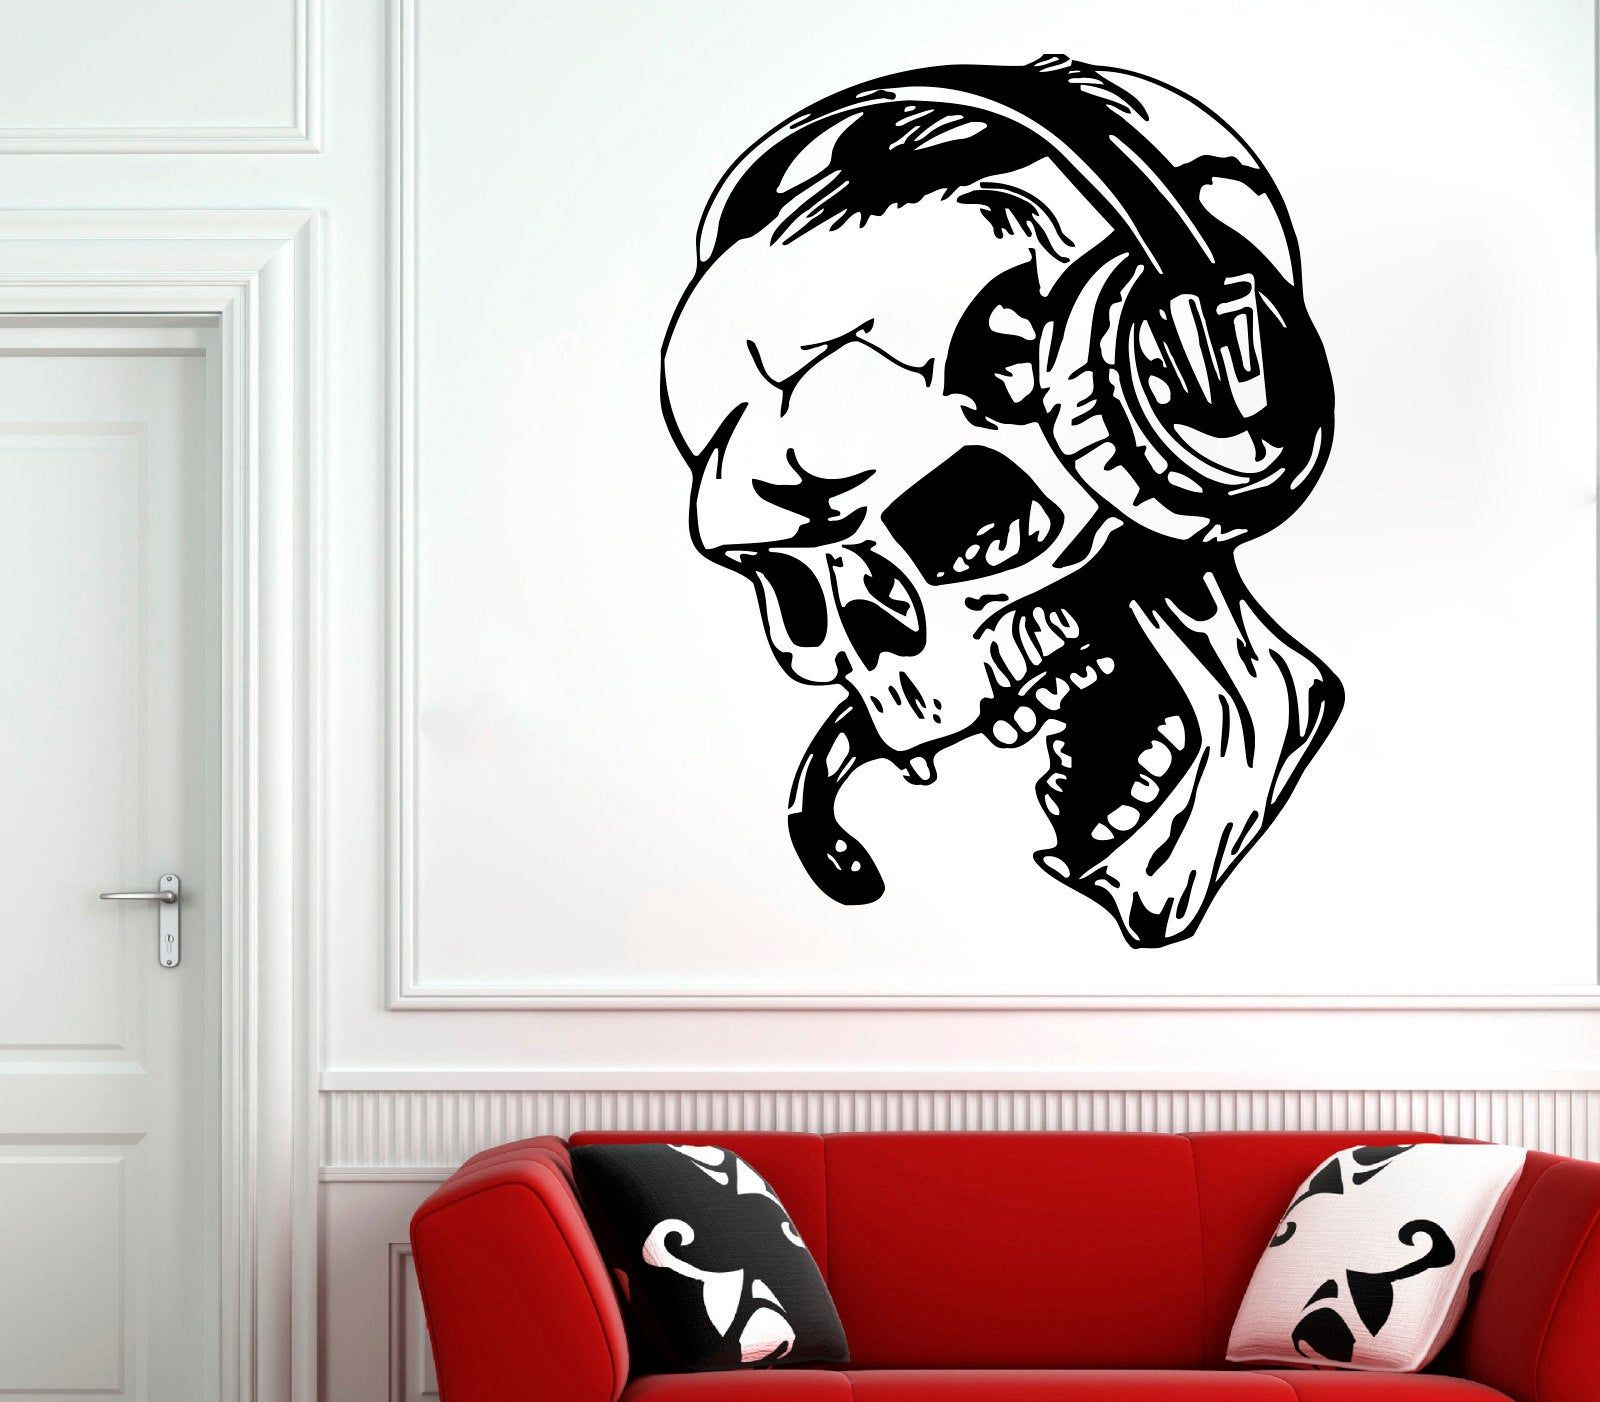 Gamer Wall Decal Gamer Decals Controller Decals Personalized Gamer Room z77